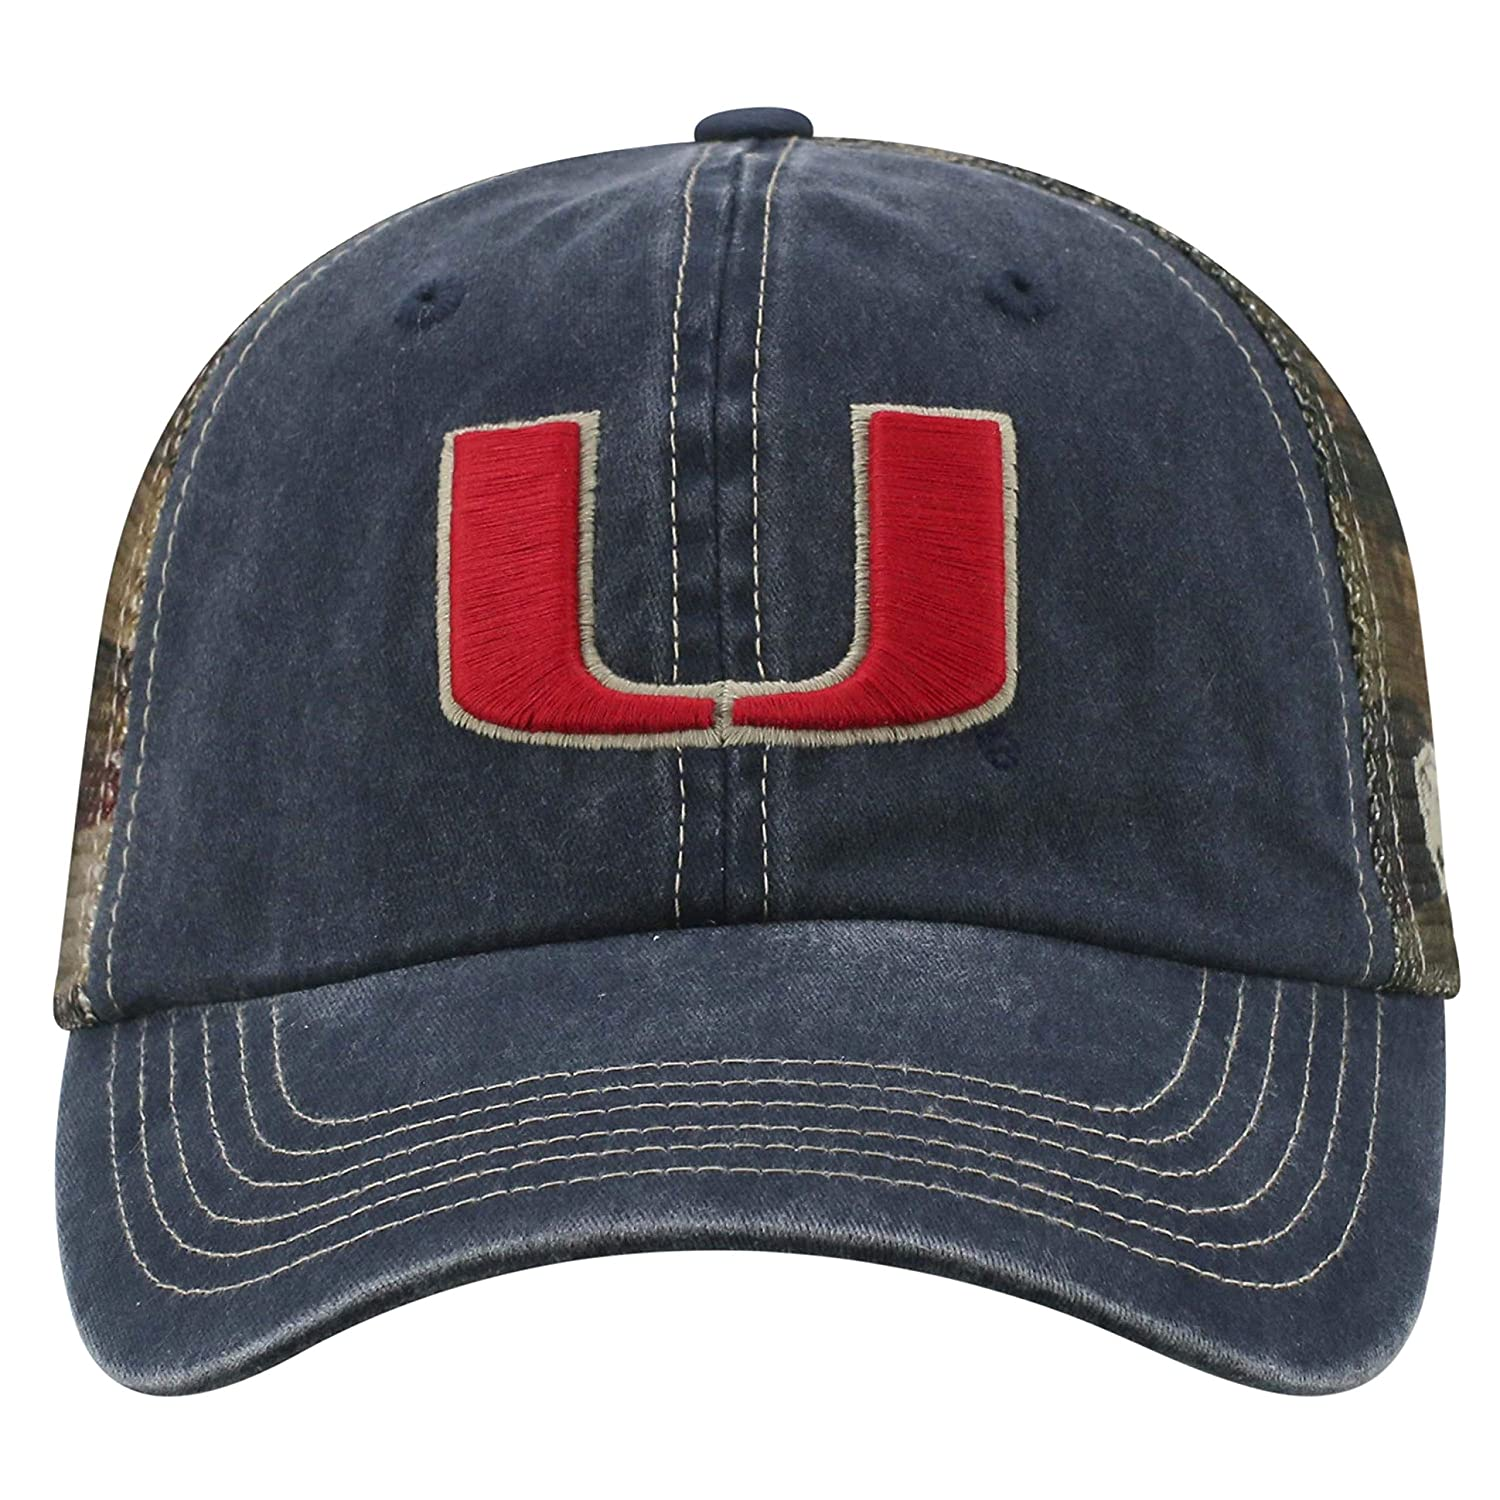 check out 9ea5e 8f89f Amazon.com  Top of the World NCAA Miami Hurricanes Flagtacular Mesh Hat  Blue Adjustable  Clothing